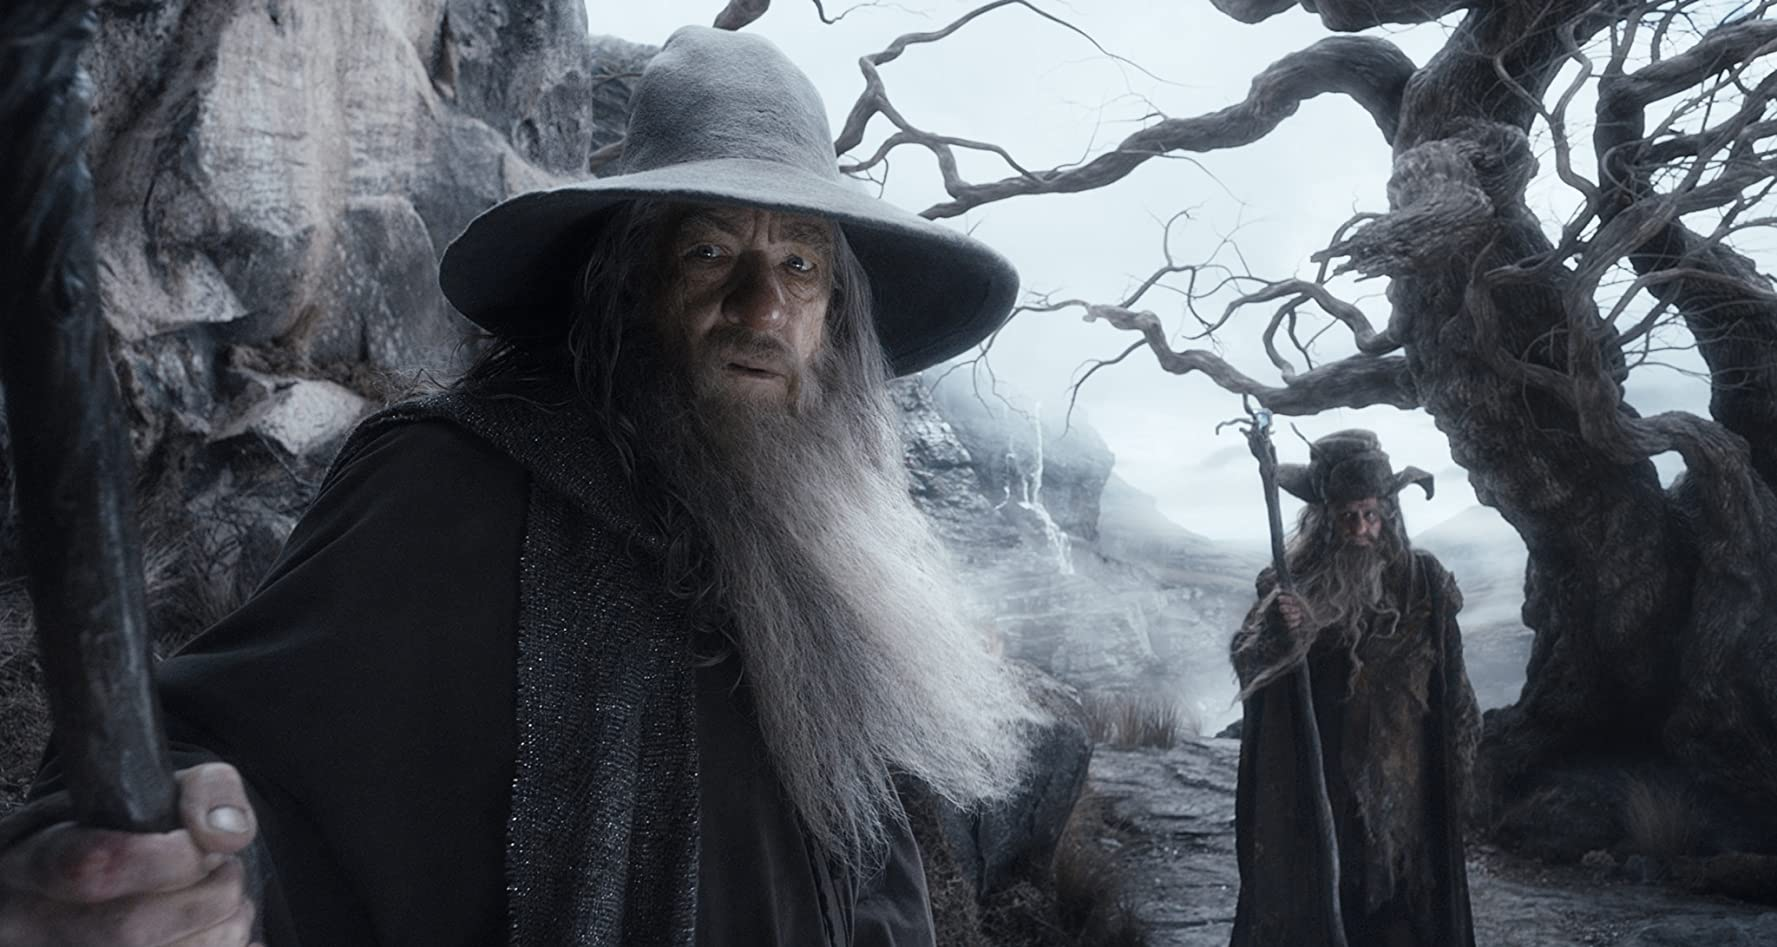 Ian McKellen and Sylvester McCoy in The Hobbit: The Desolation of Smaug (2013)